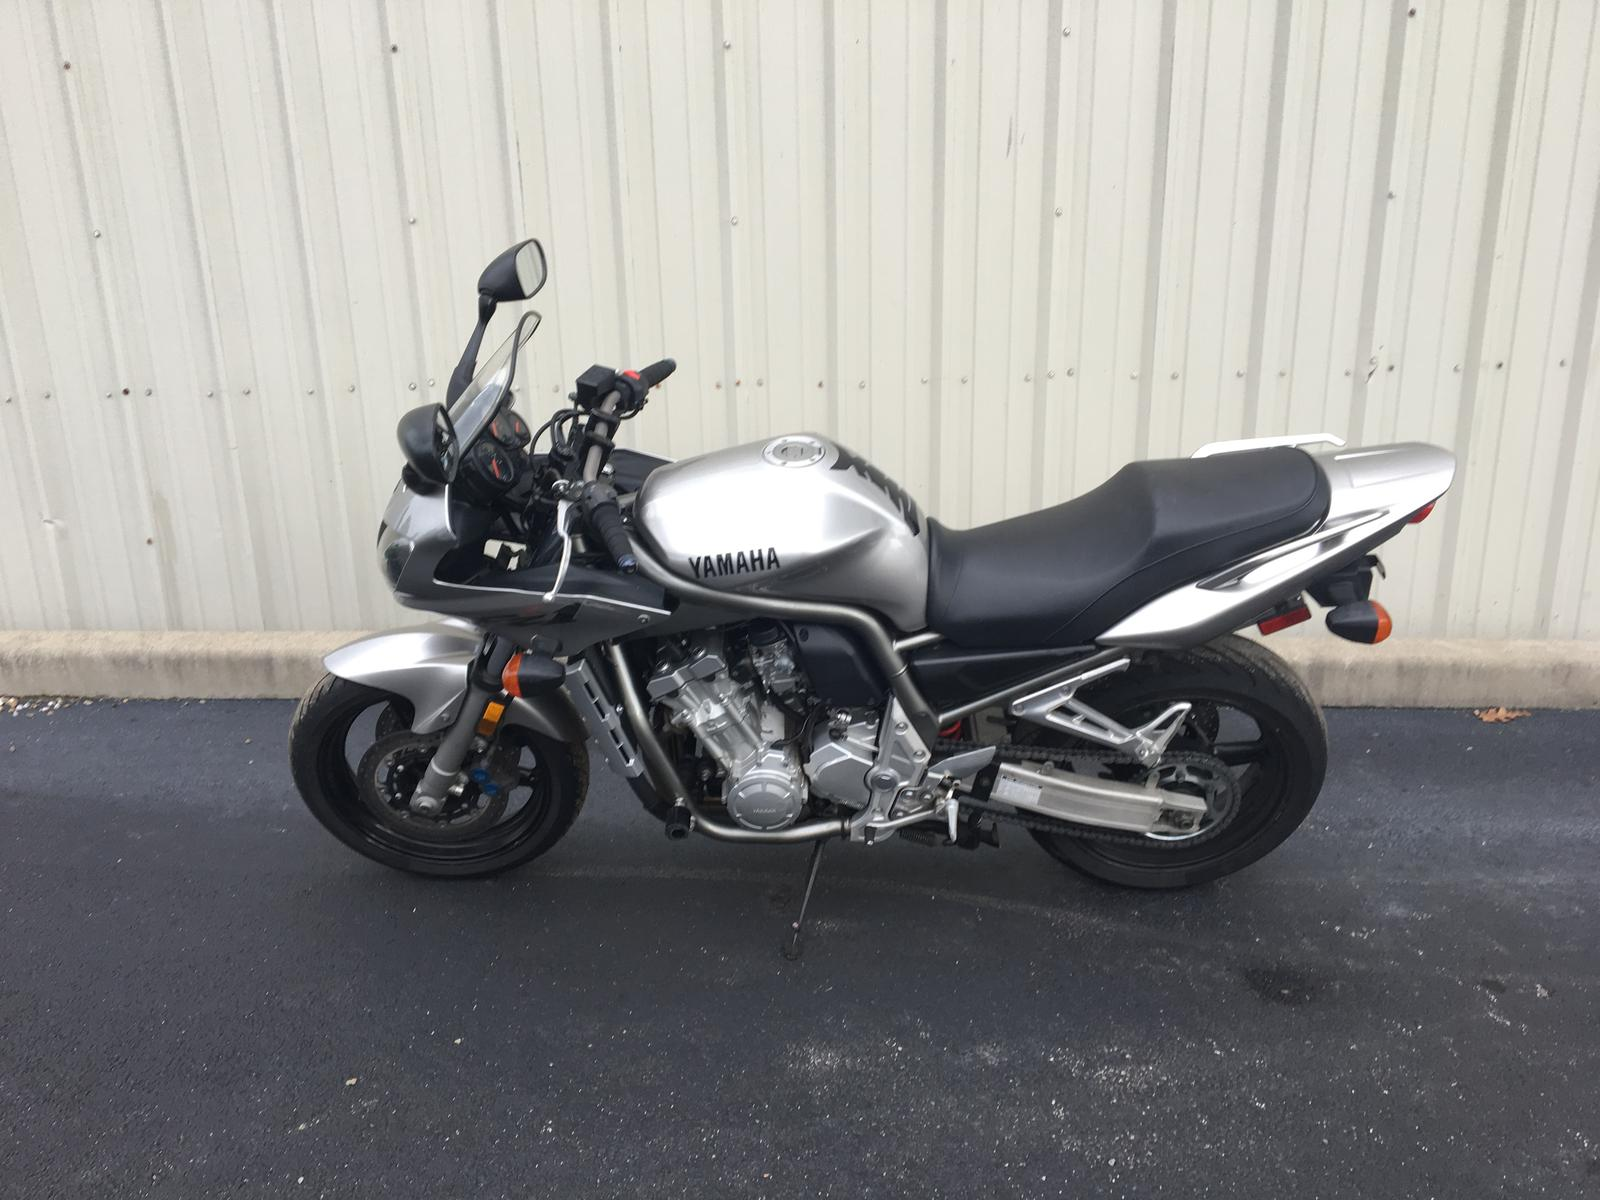 2002 Yamaha FZ1 for sale 73691